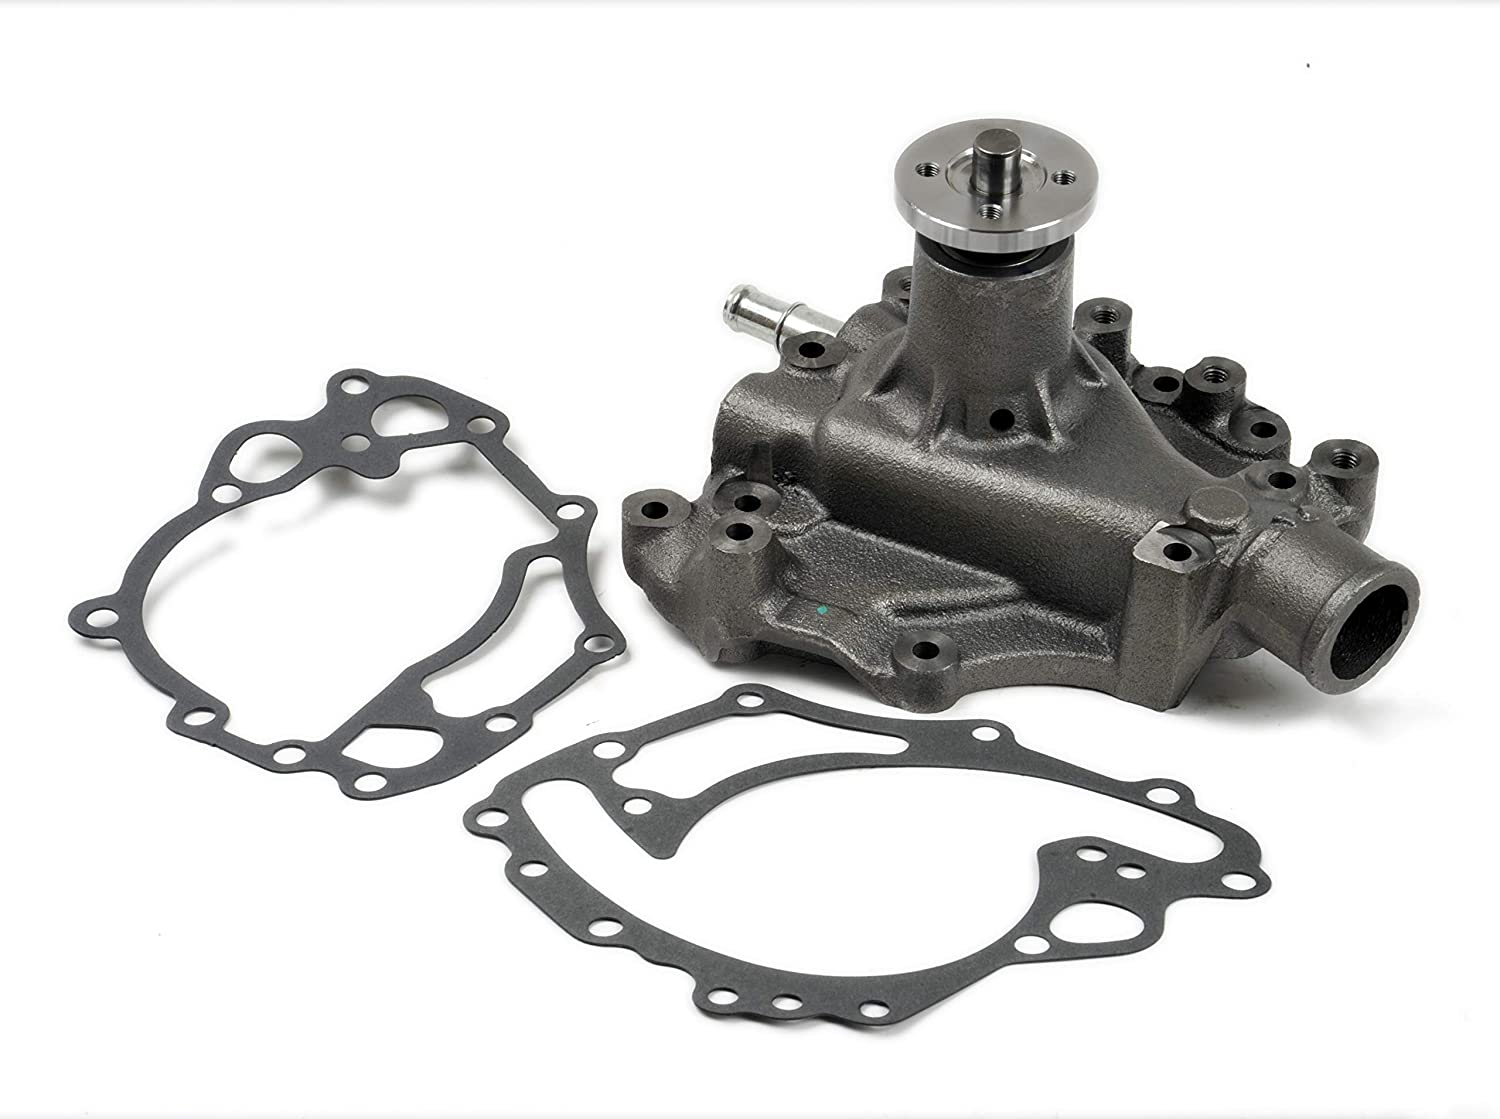 Ranking TOP19 GNS Water Pump TWTR-F126 New products, world's highest quality popular! Fits 82-70 FORD MERCURY 5.8 PRODUCTS